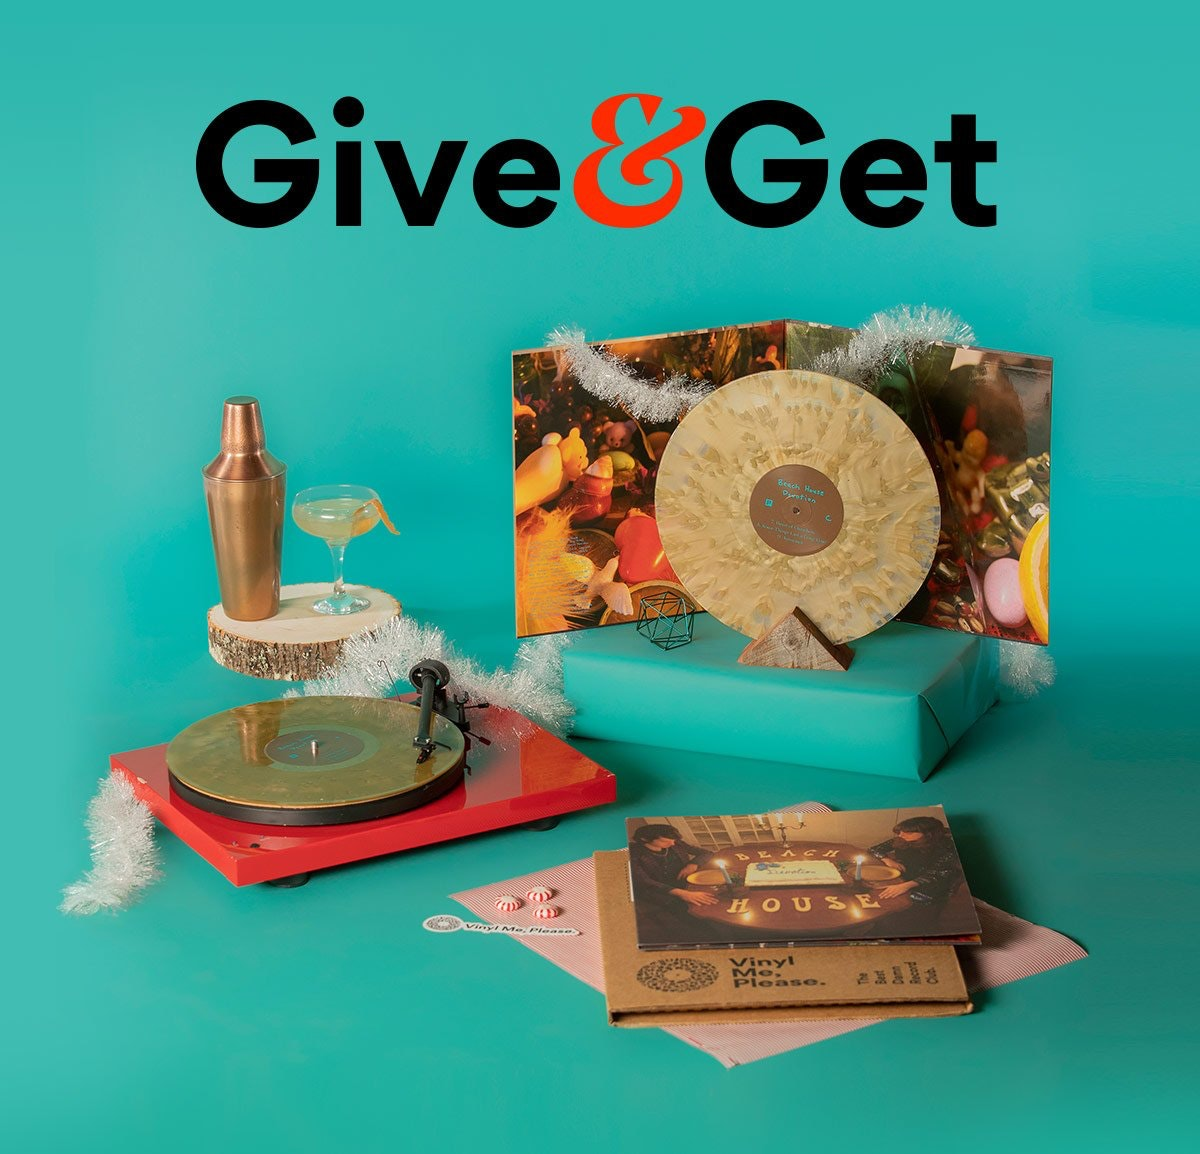 Give & Get Gift Promotion